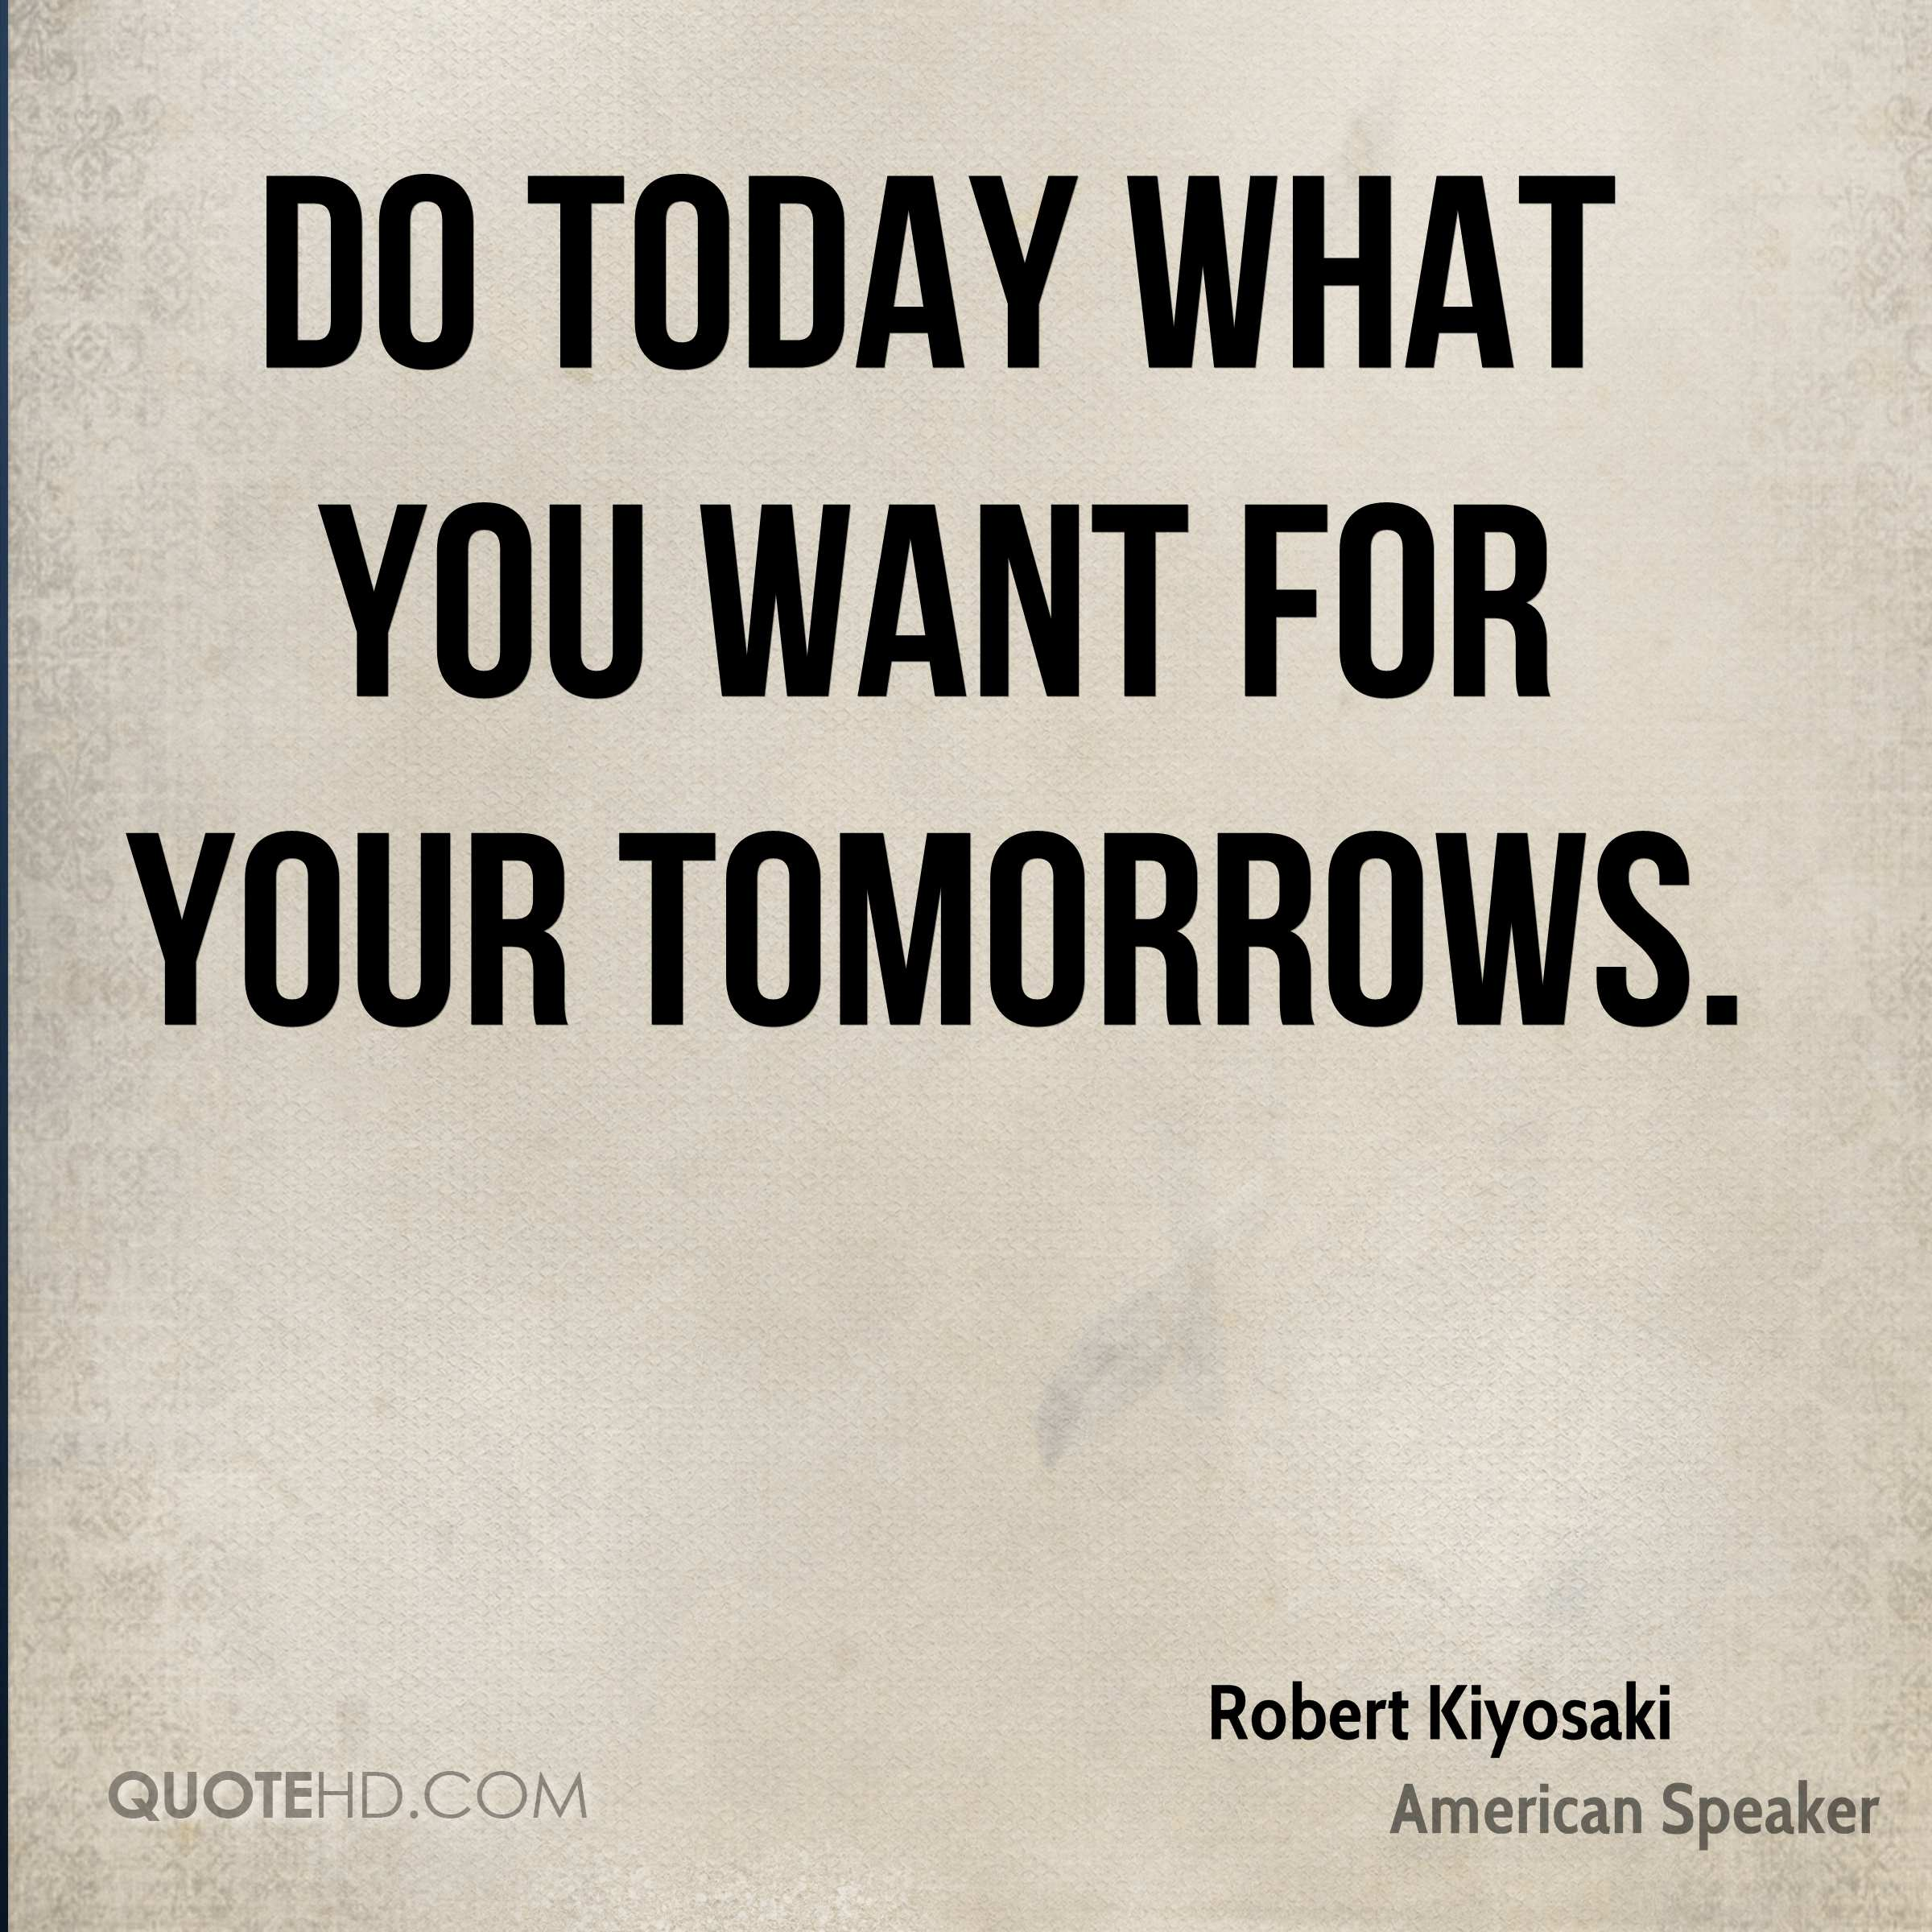 Do today what you want for your tomorrows.